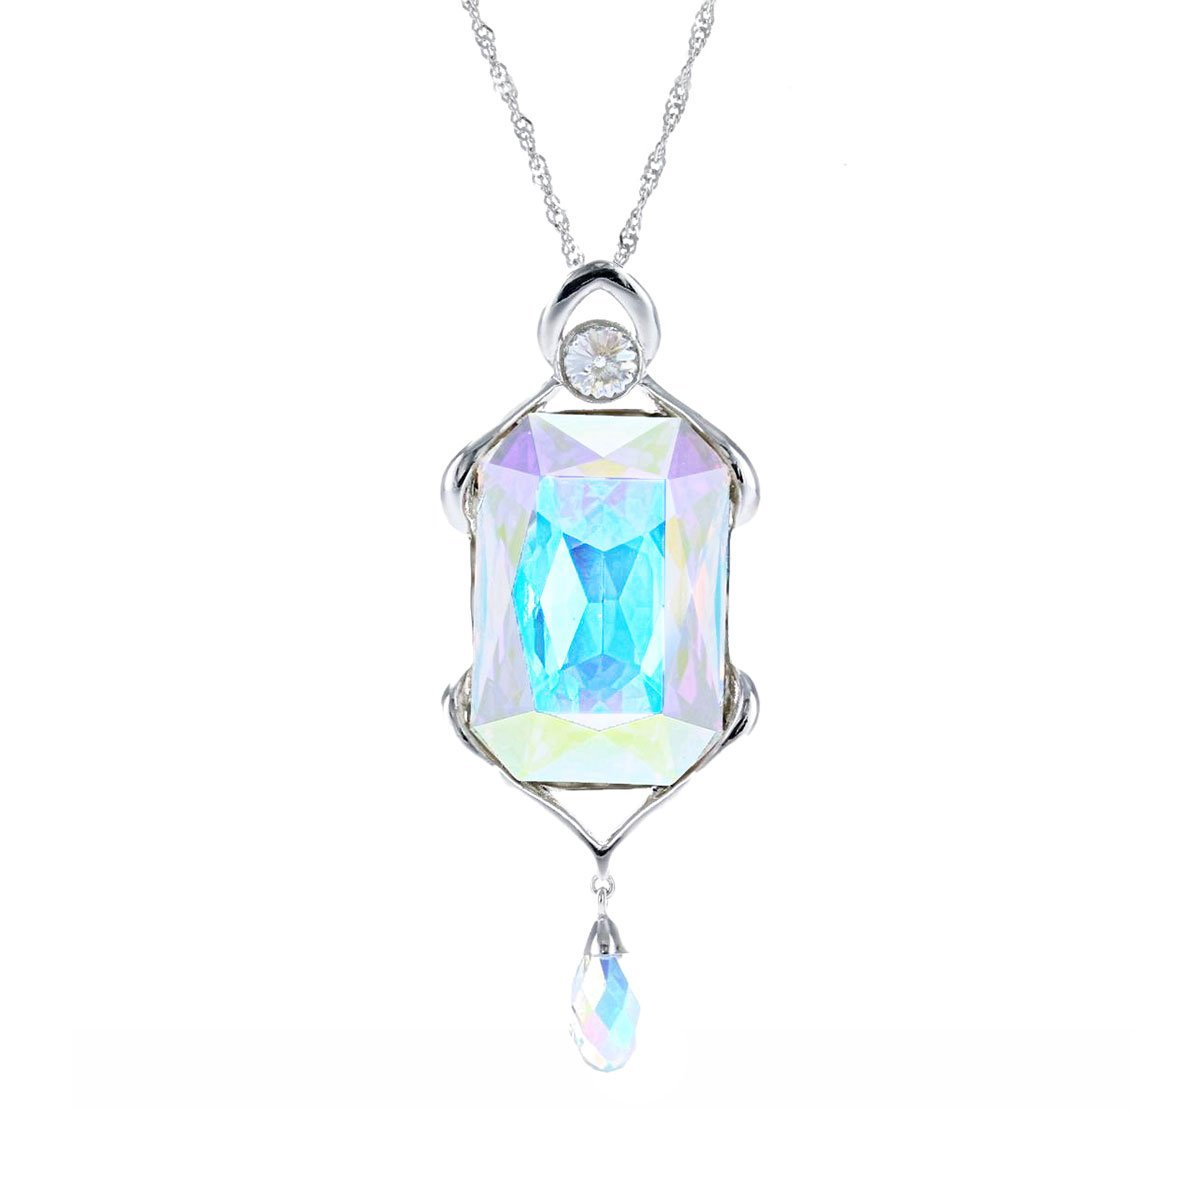 Swarovski Crystal Aurora Borealis Large Rectangle Pendant in Sterling Silver